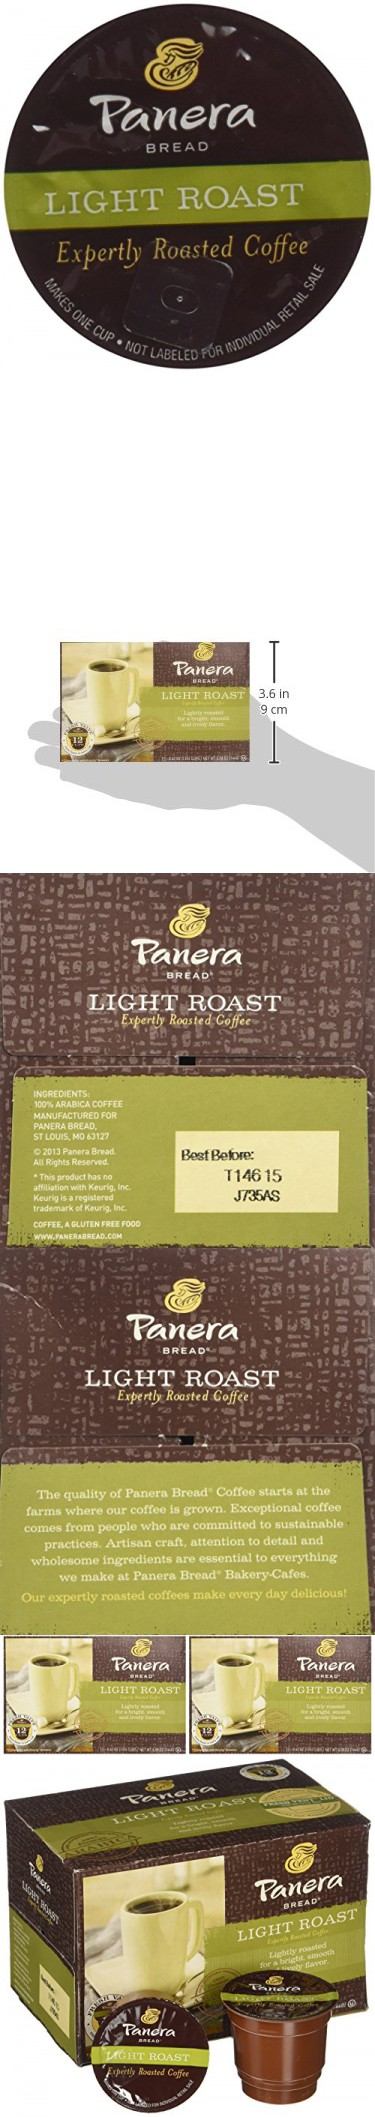 Panera Bread Coffee Box Endearing Panera Bread Kcup Single Serve Coffee 12 Count 508Oz Box Pack Inspiration Design